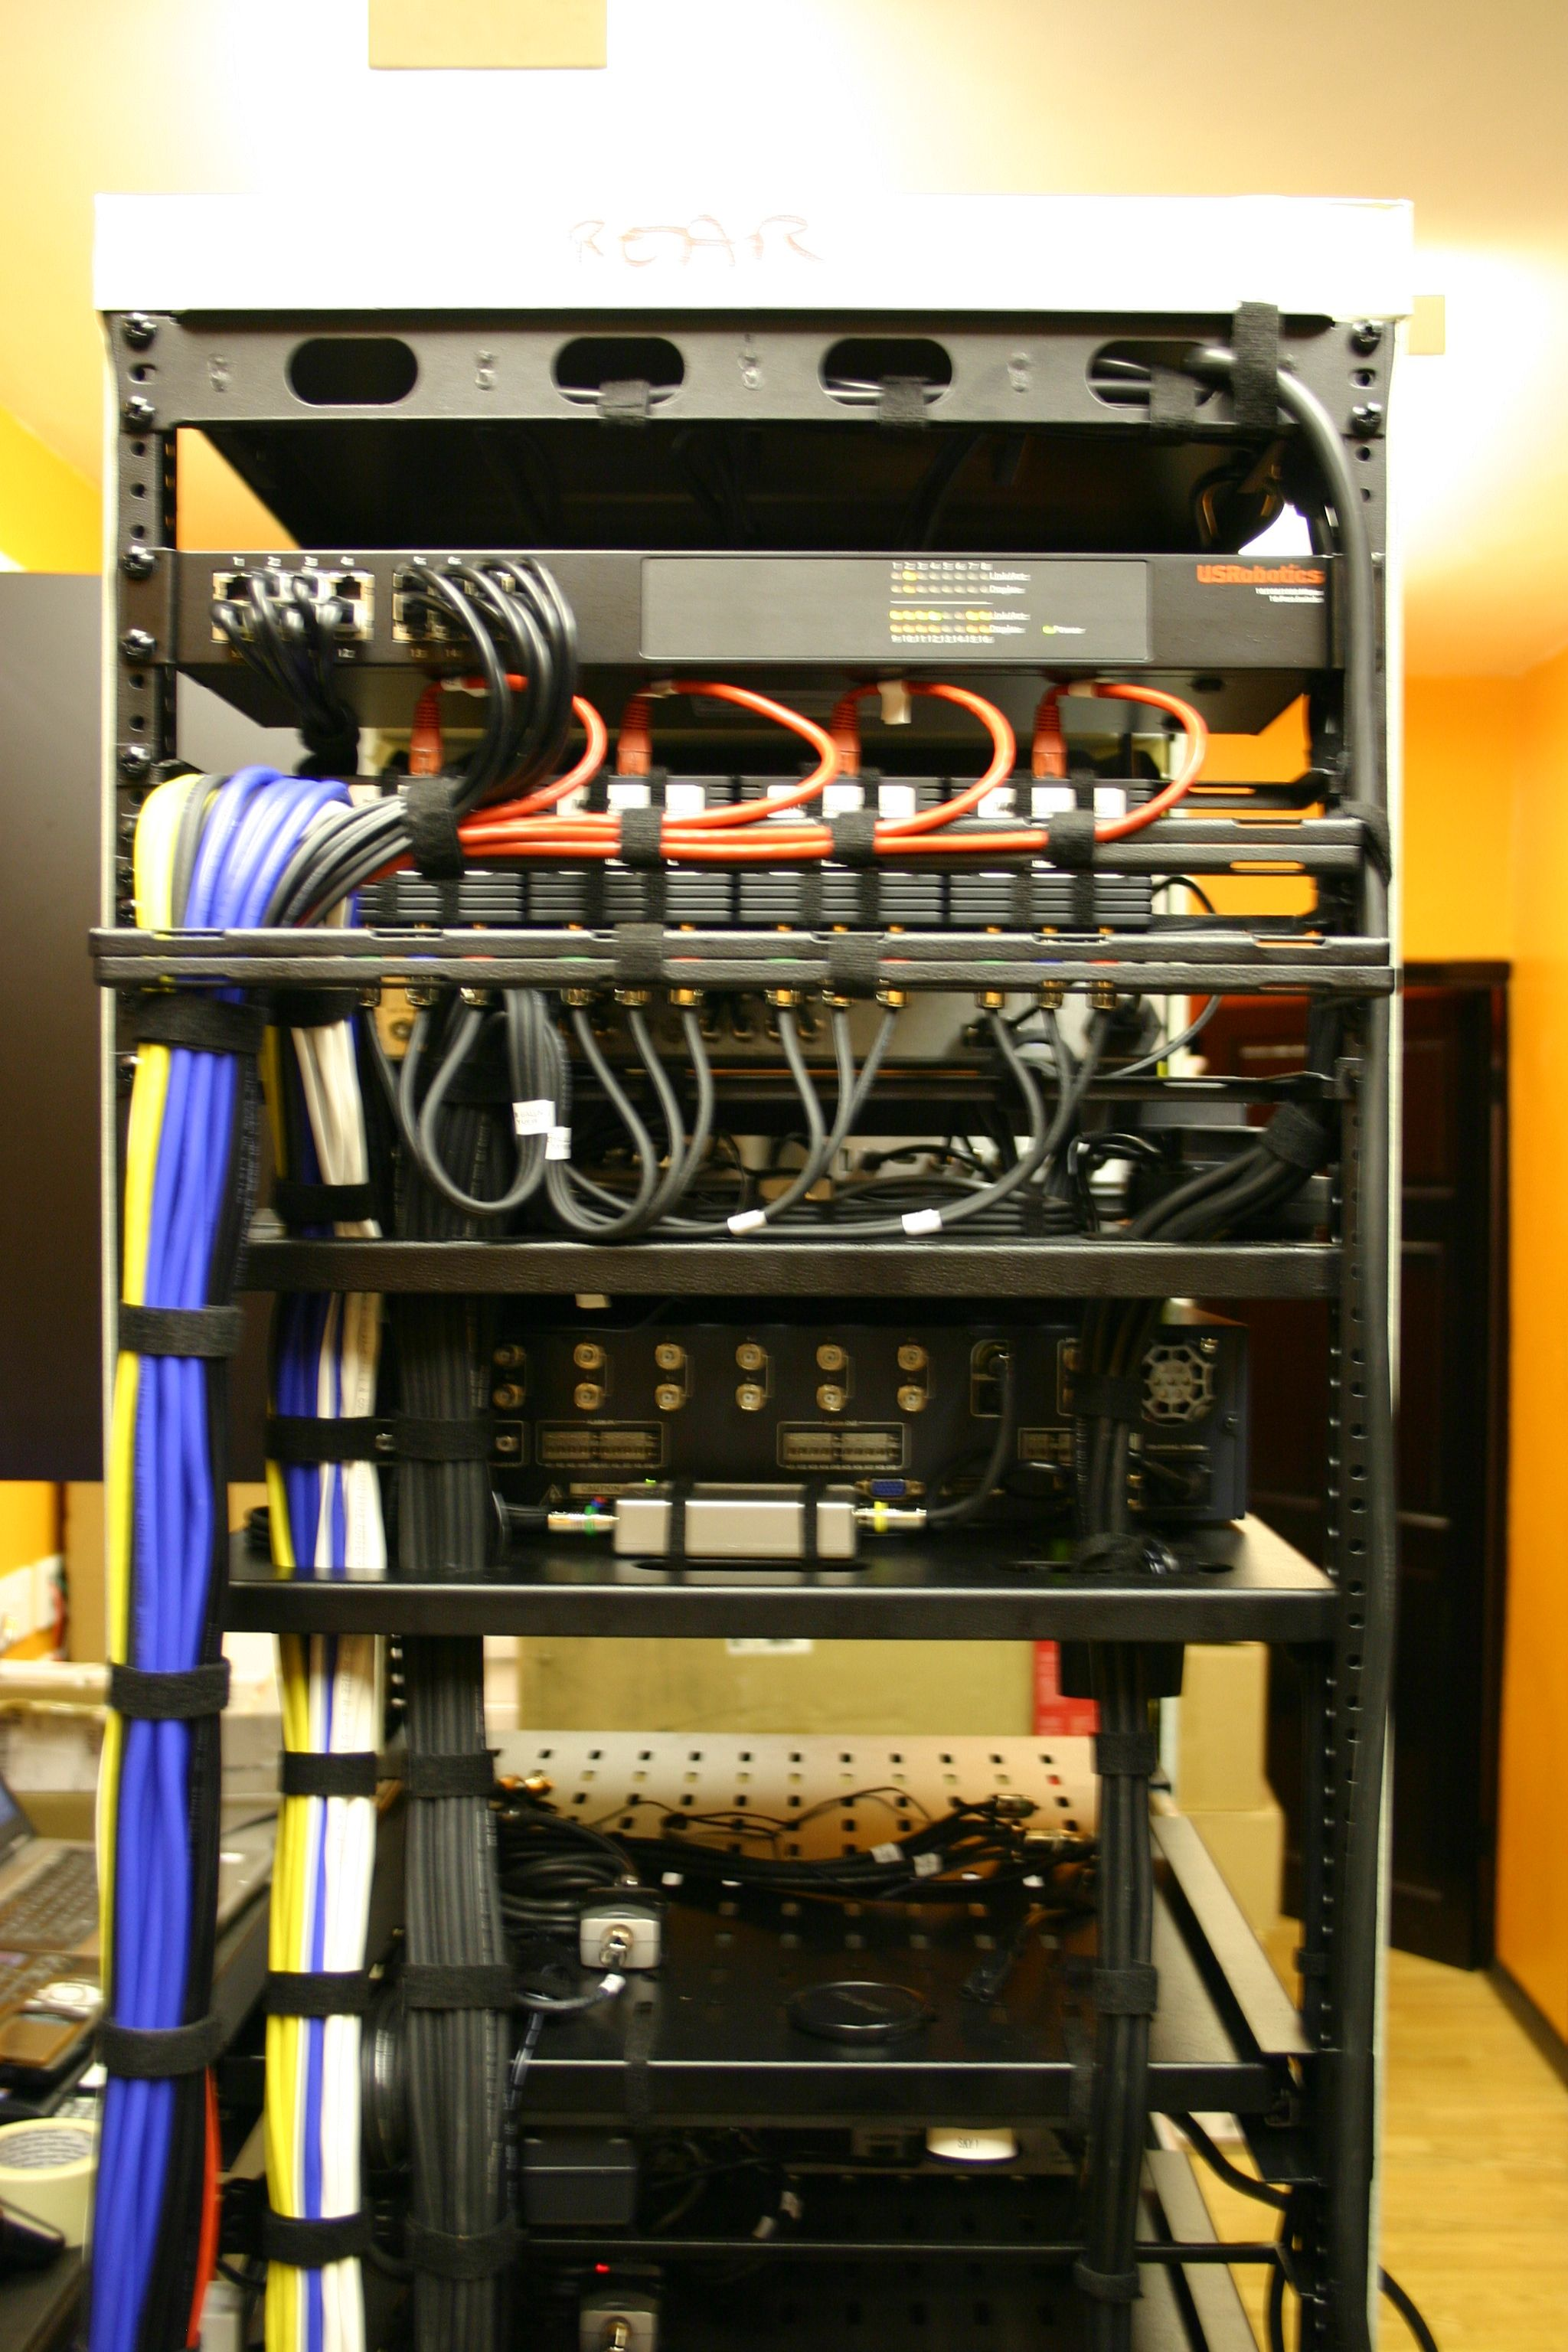 medium resolution of av racks showcase hot racks in 2019 cable management cable structured wiring cabinet for network and a v